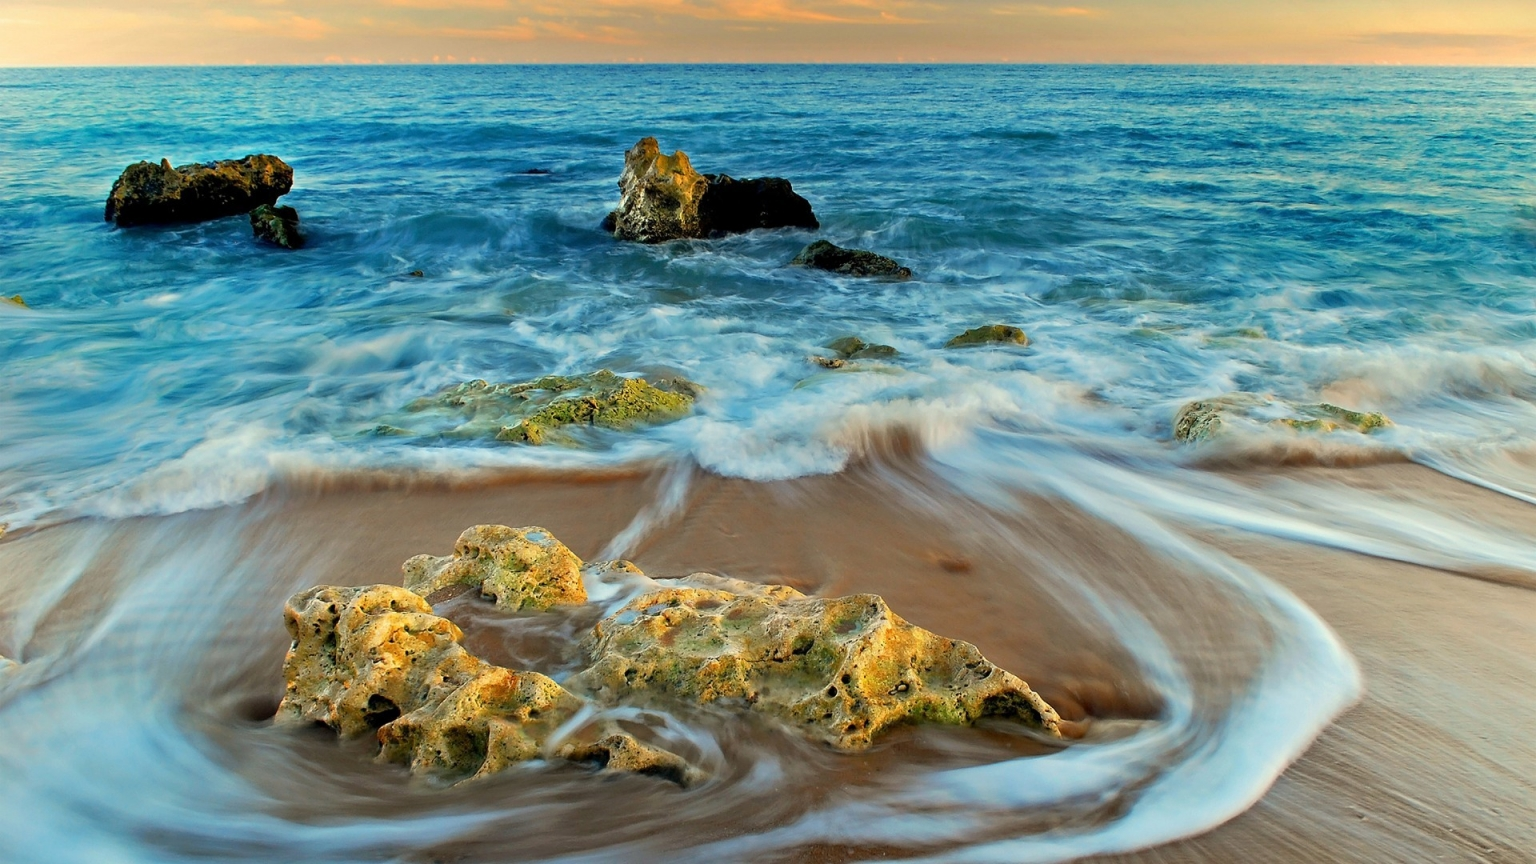 Rocks and Sea Landscape for 1536 x 864 HDTV resolution